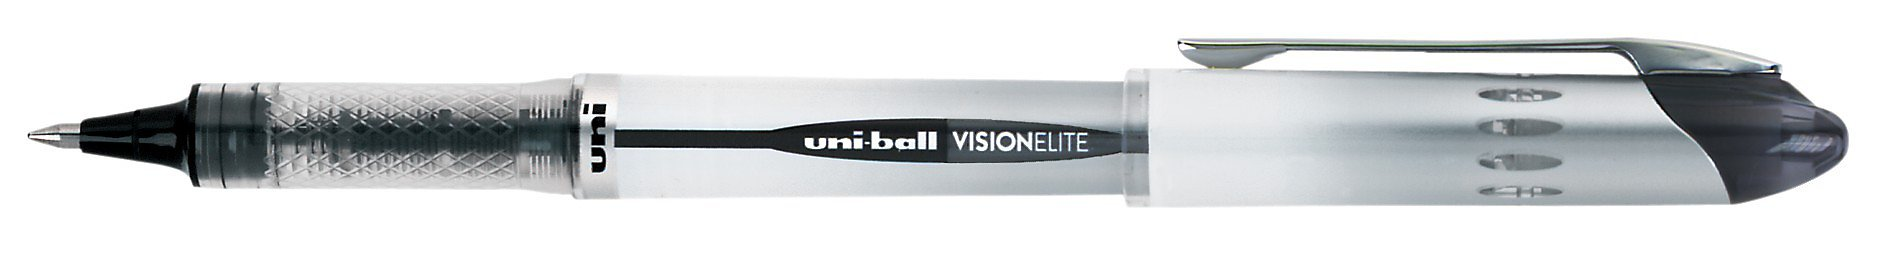 uni-ball Vision Elite Rollerball Pens, Bold Point (0.8mm), Black, 4 Count by Uni-ball (Image #4)